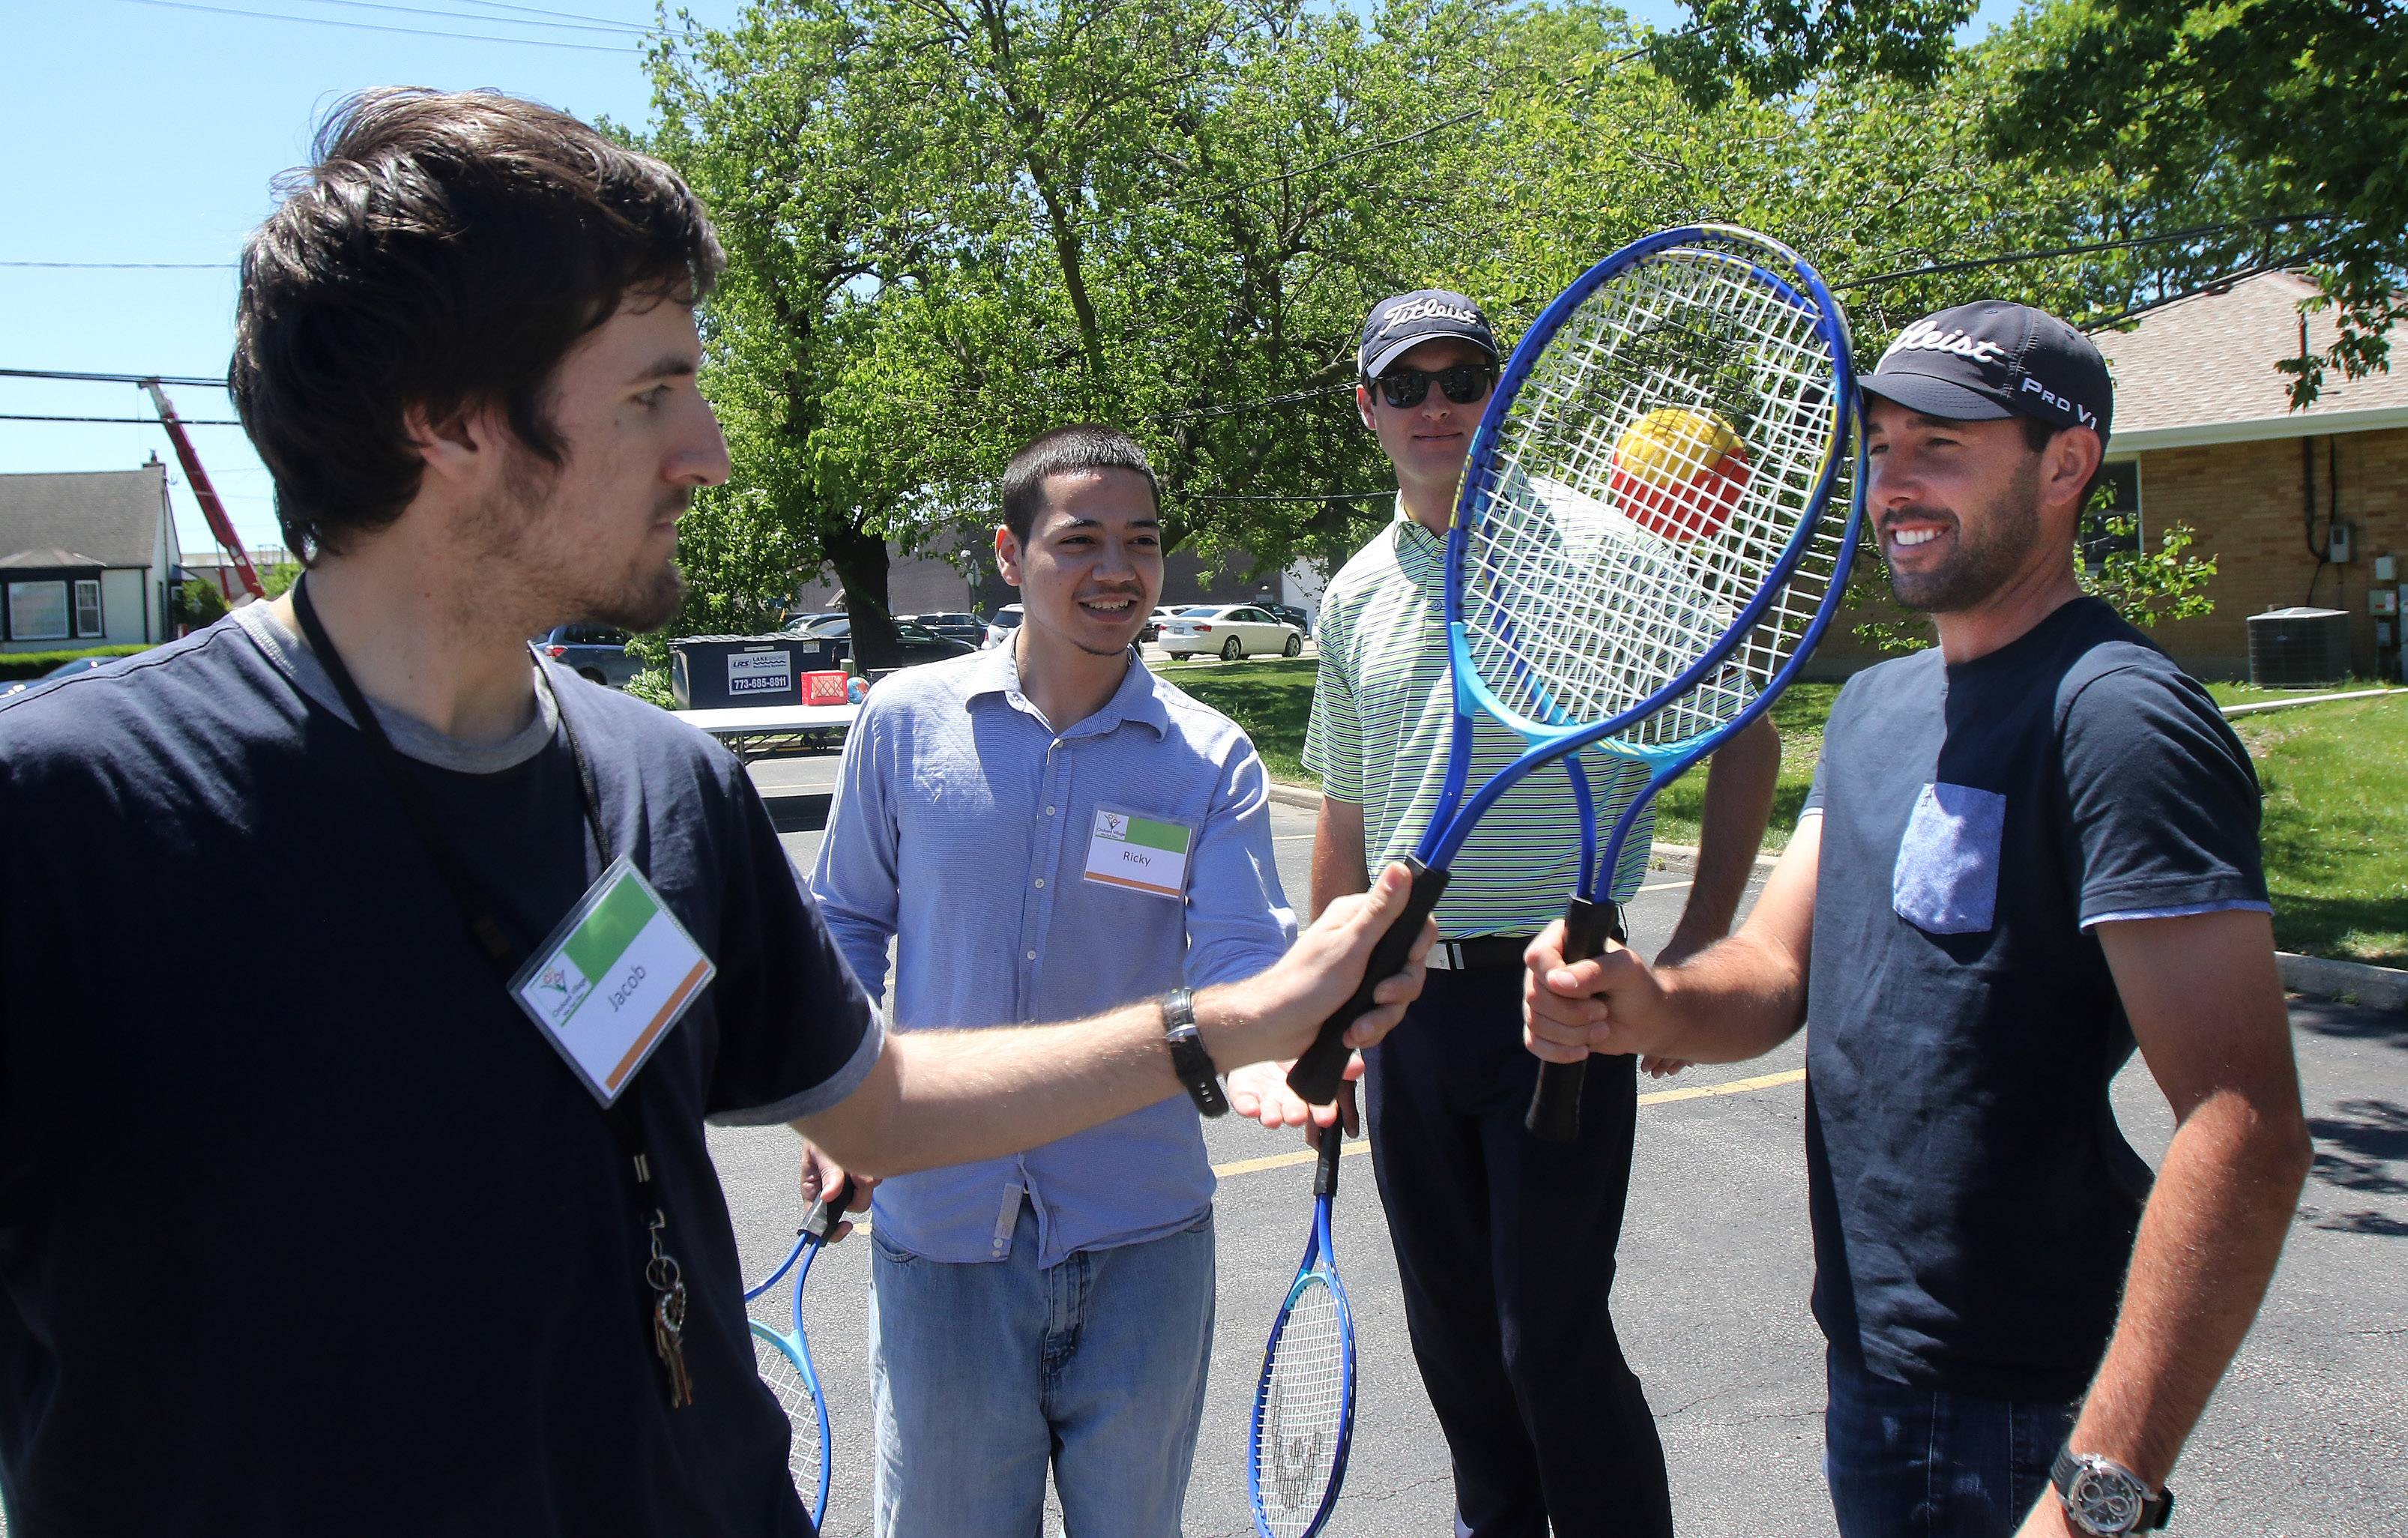 Resident Jacob Gotter, left, plays a game of adaptive tennis with golfer Michael Schachner of Libertyville on Tuesday, as golfers from the Rust-Oleum Championship met with residential clients at Orchard Village in Skokie.